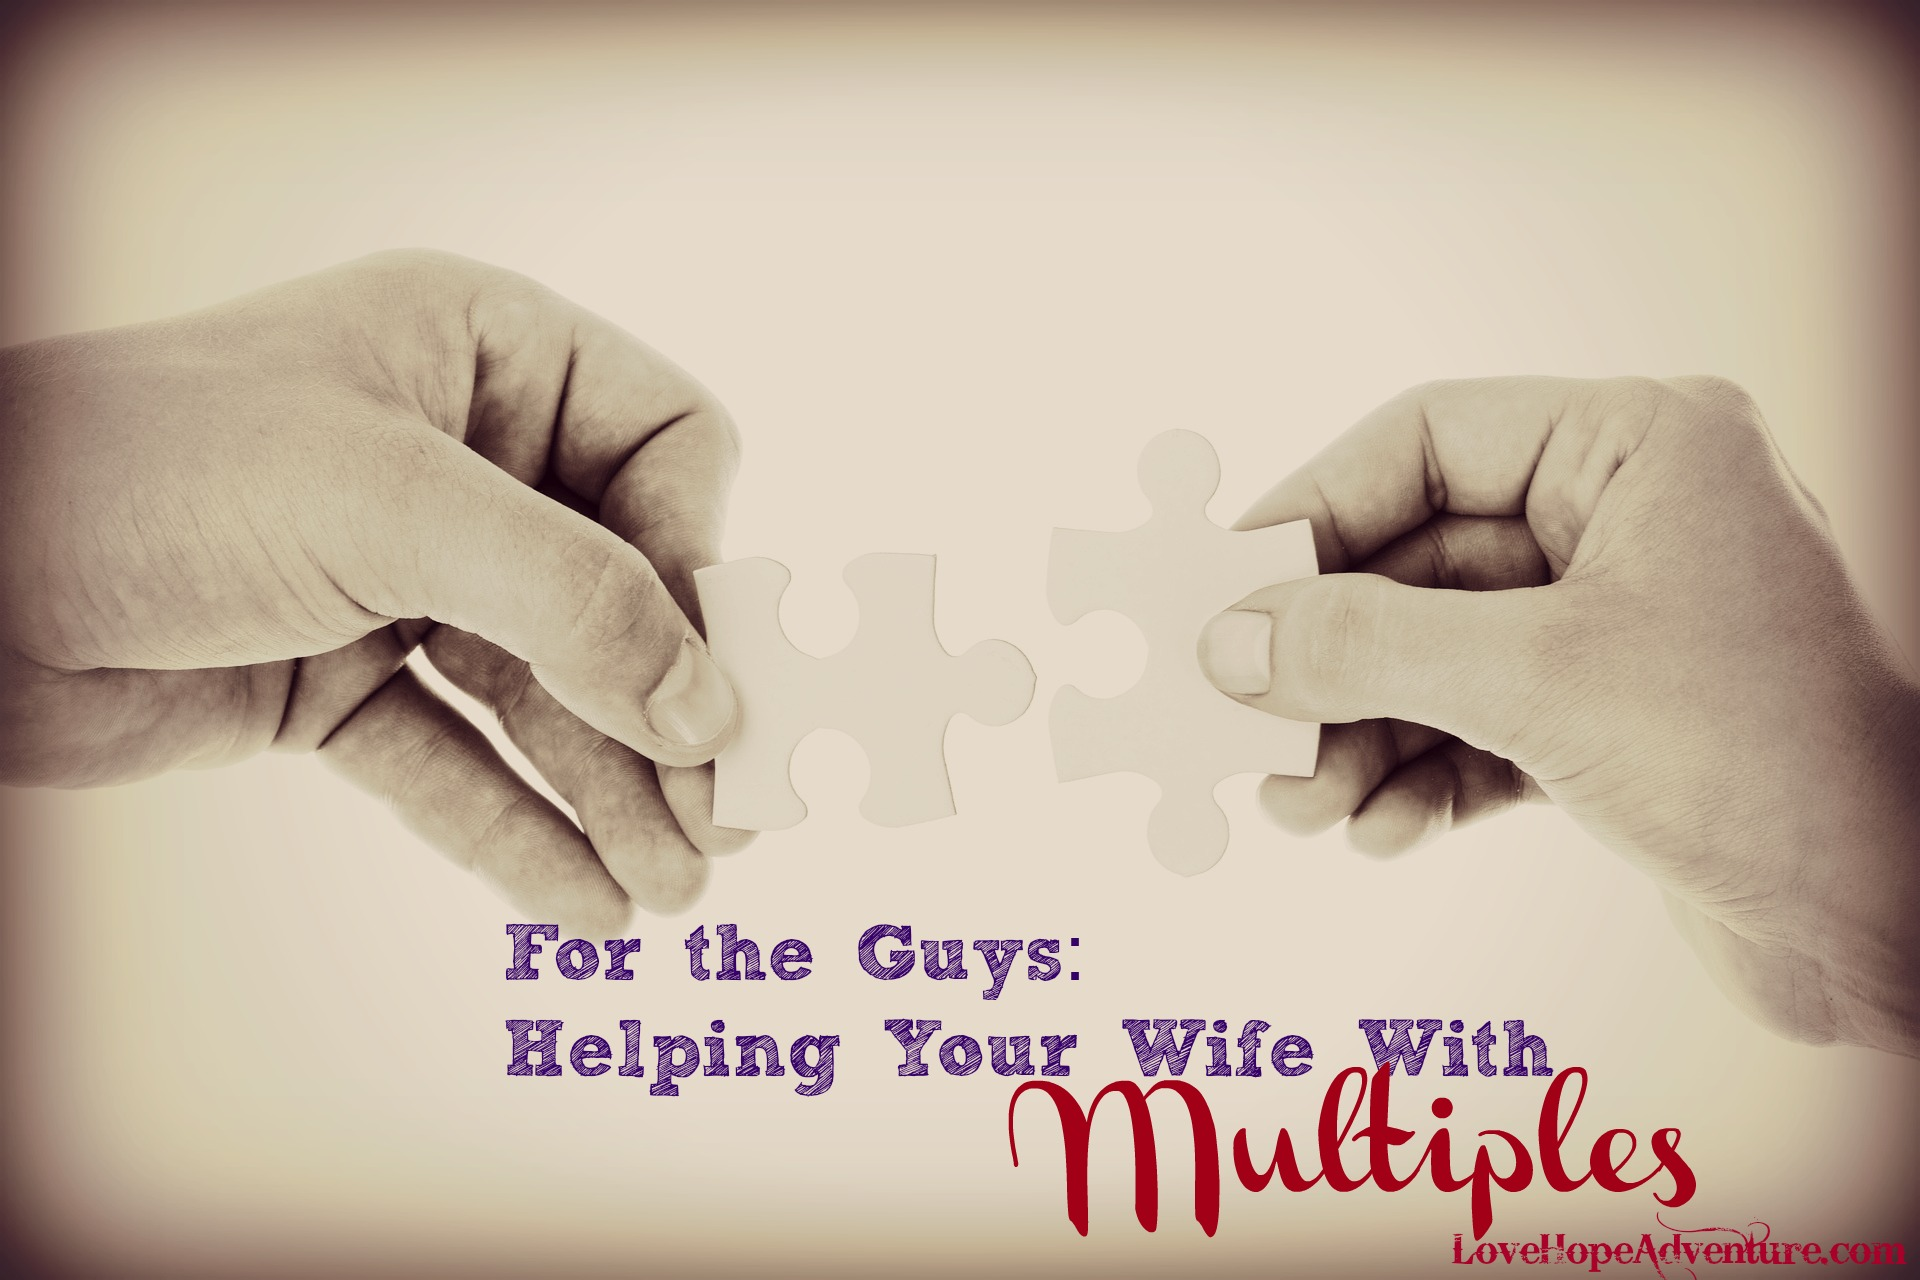 For the Guys Helping Your Wife With Multiples